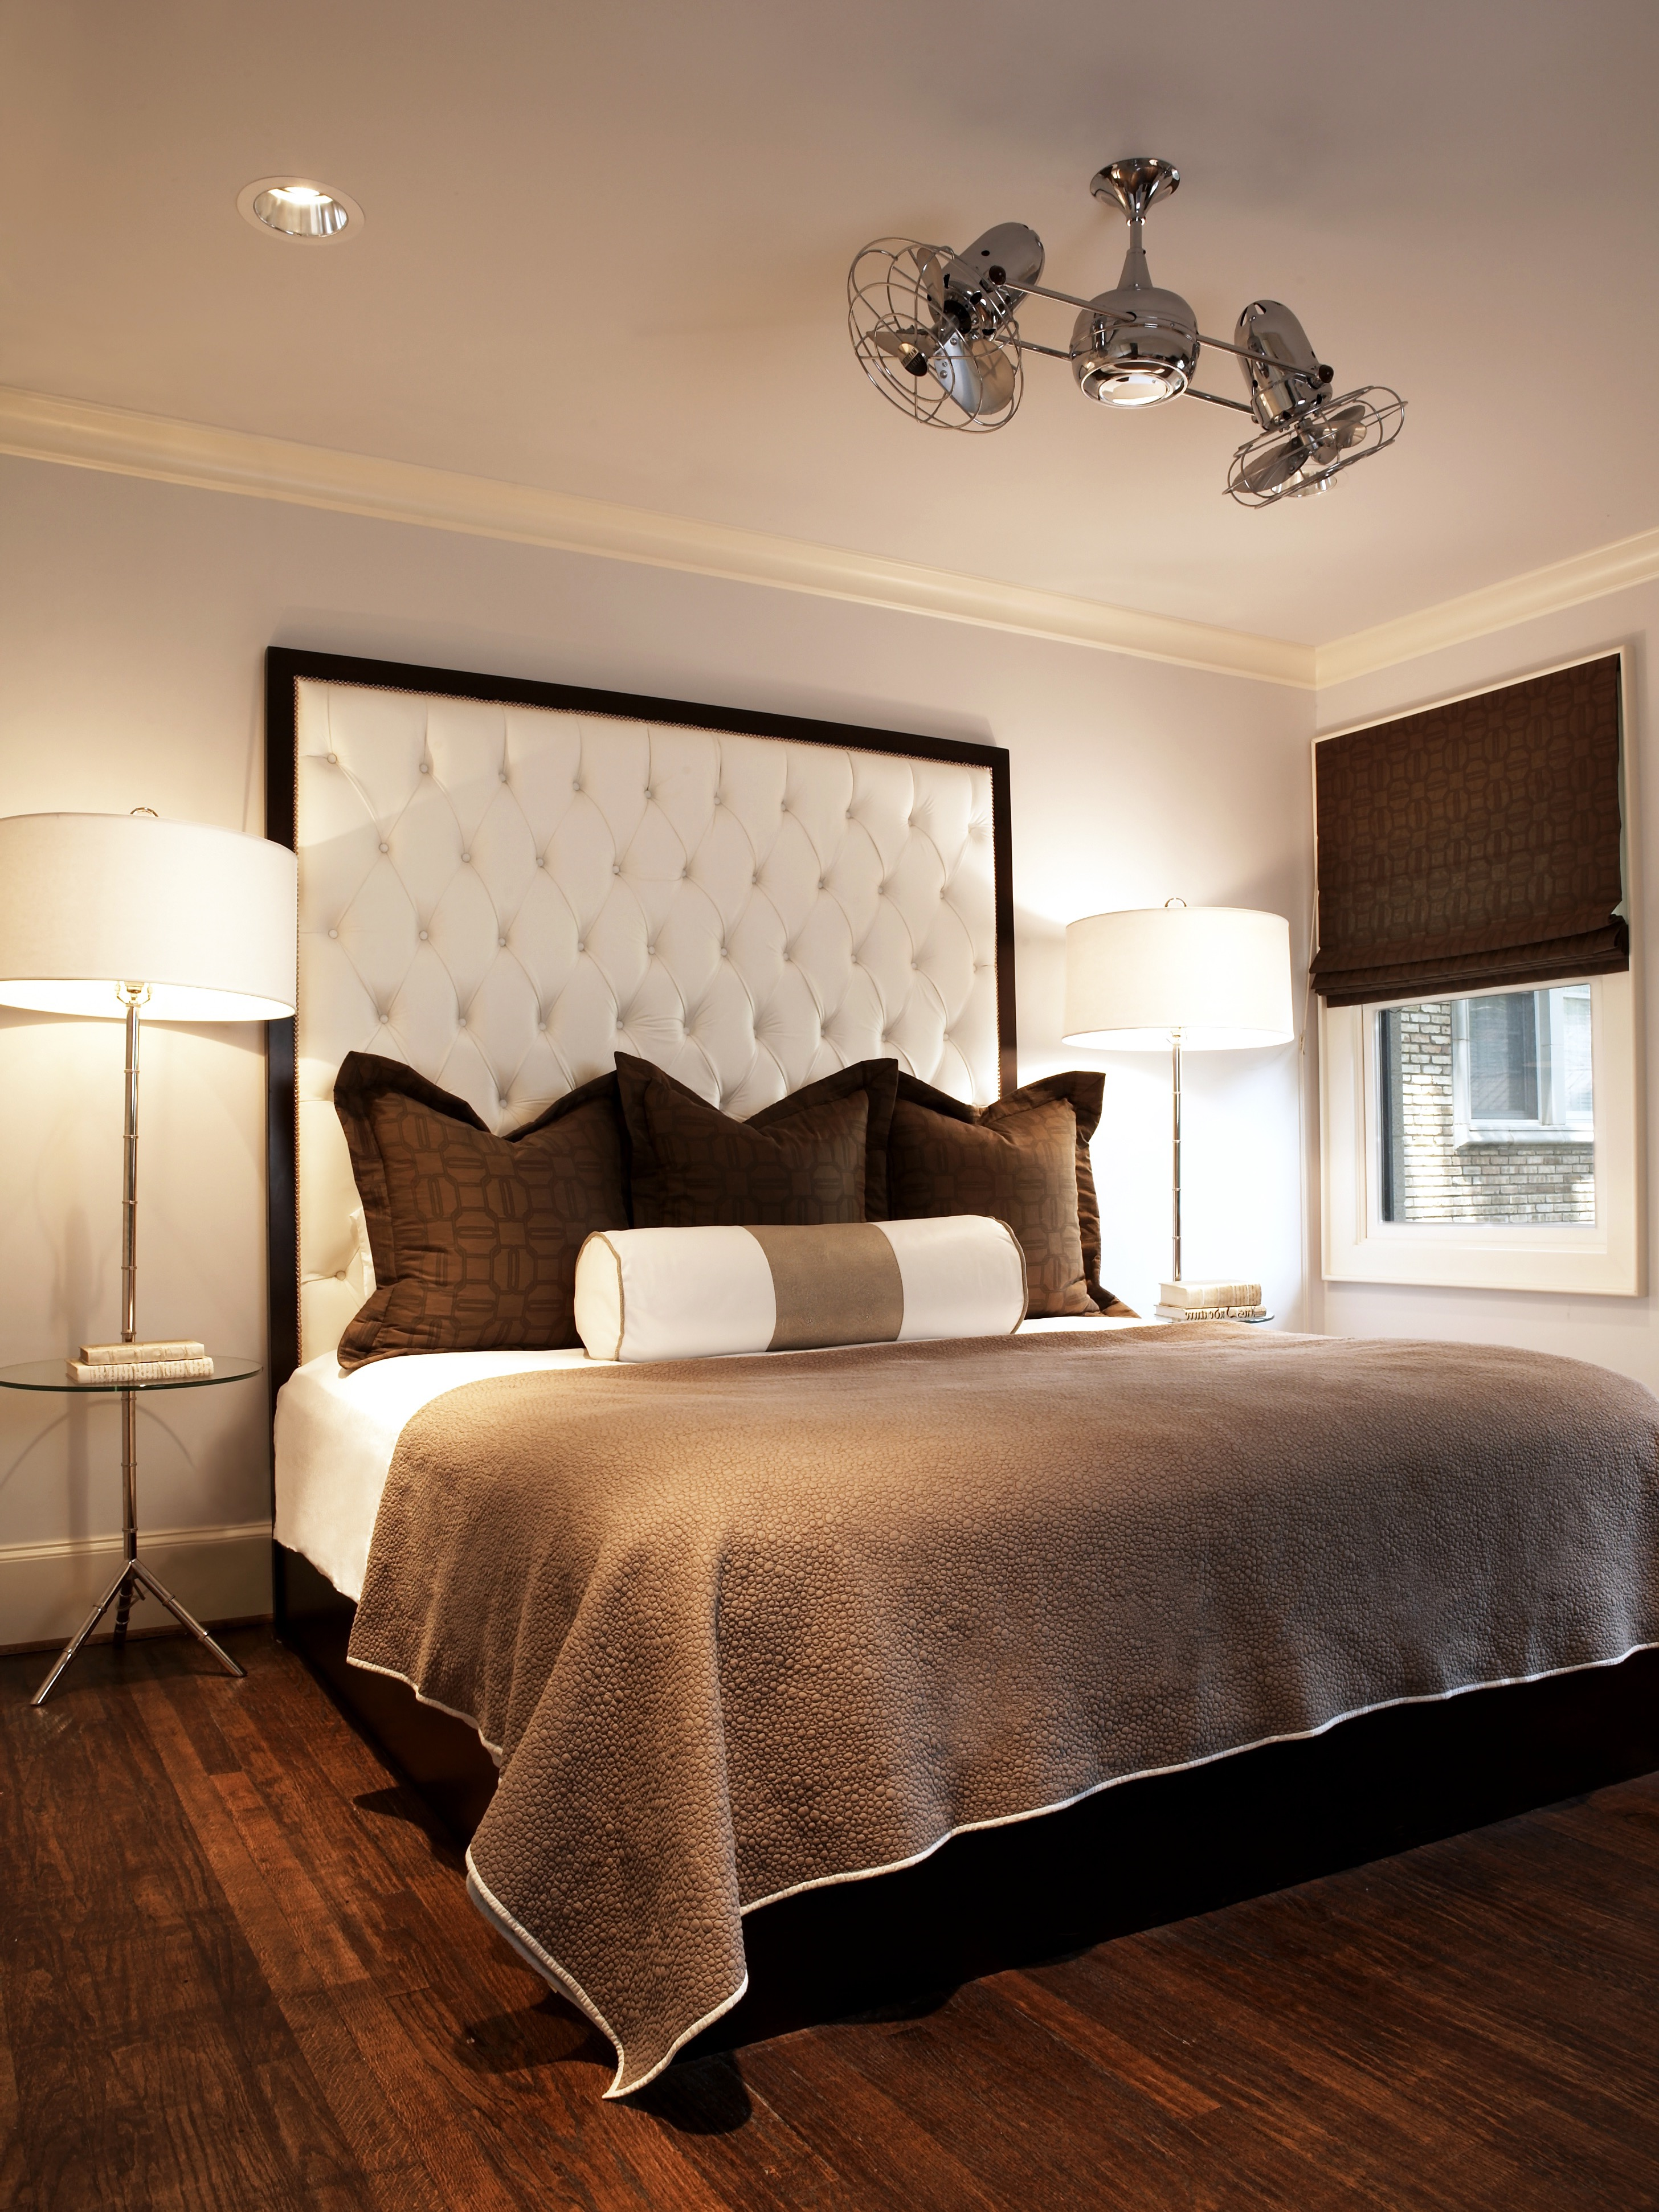 Elegance Hotel Like Bedroom With Ceiling Fans (Image 11 of 25)